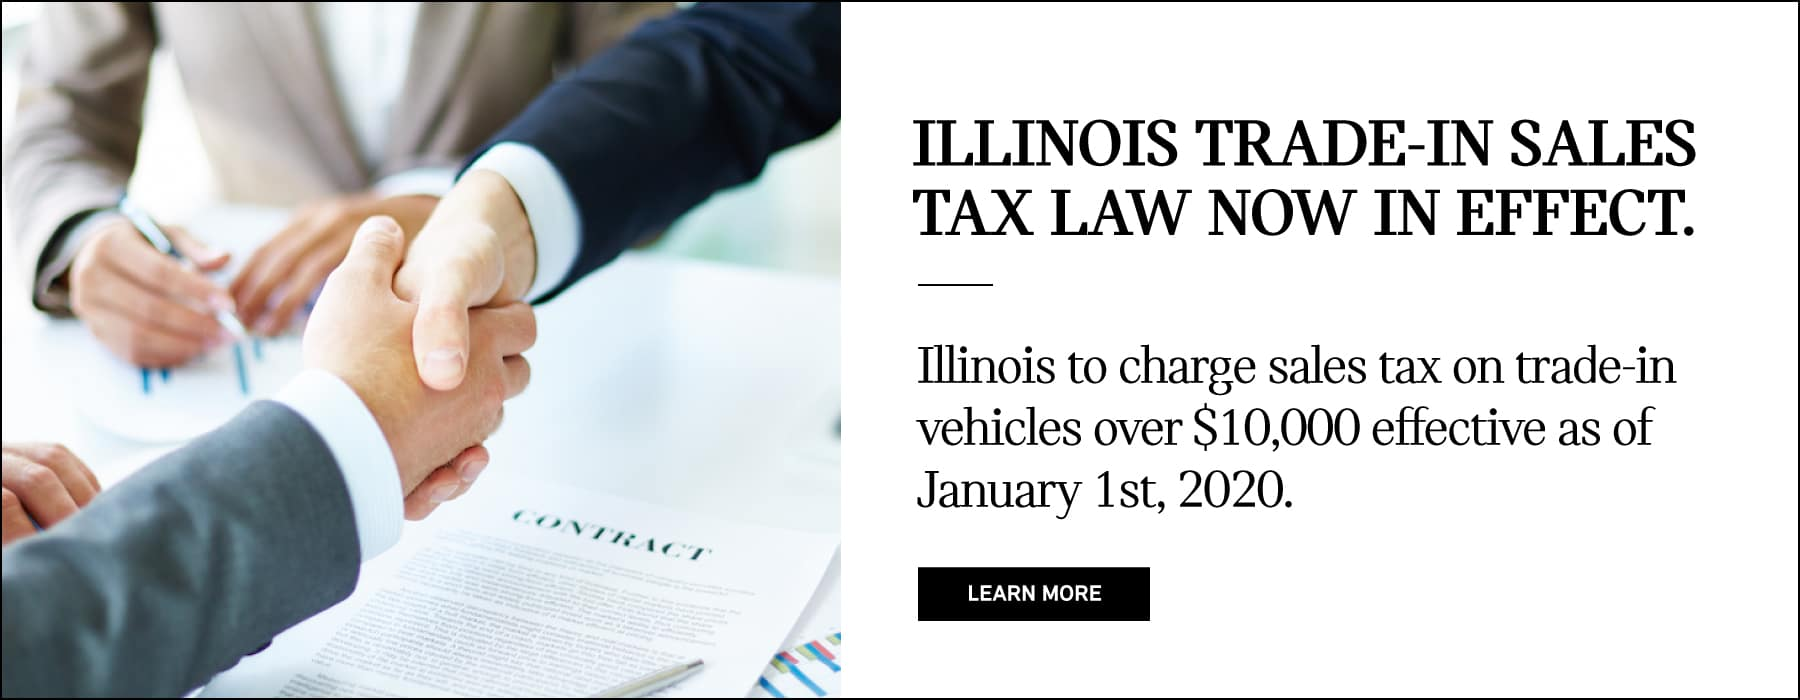 ILLINOIS TRADE-IN SALES TAX LAW NOW IN EFFECT.Illinois to charge sales tax on trade-in vehicles over $10,000 effective as of January 1st, 2020